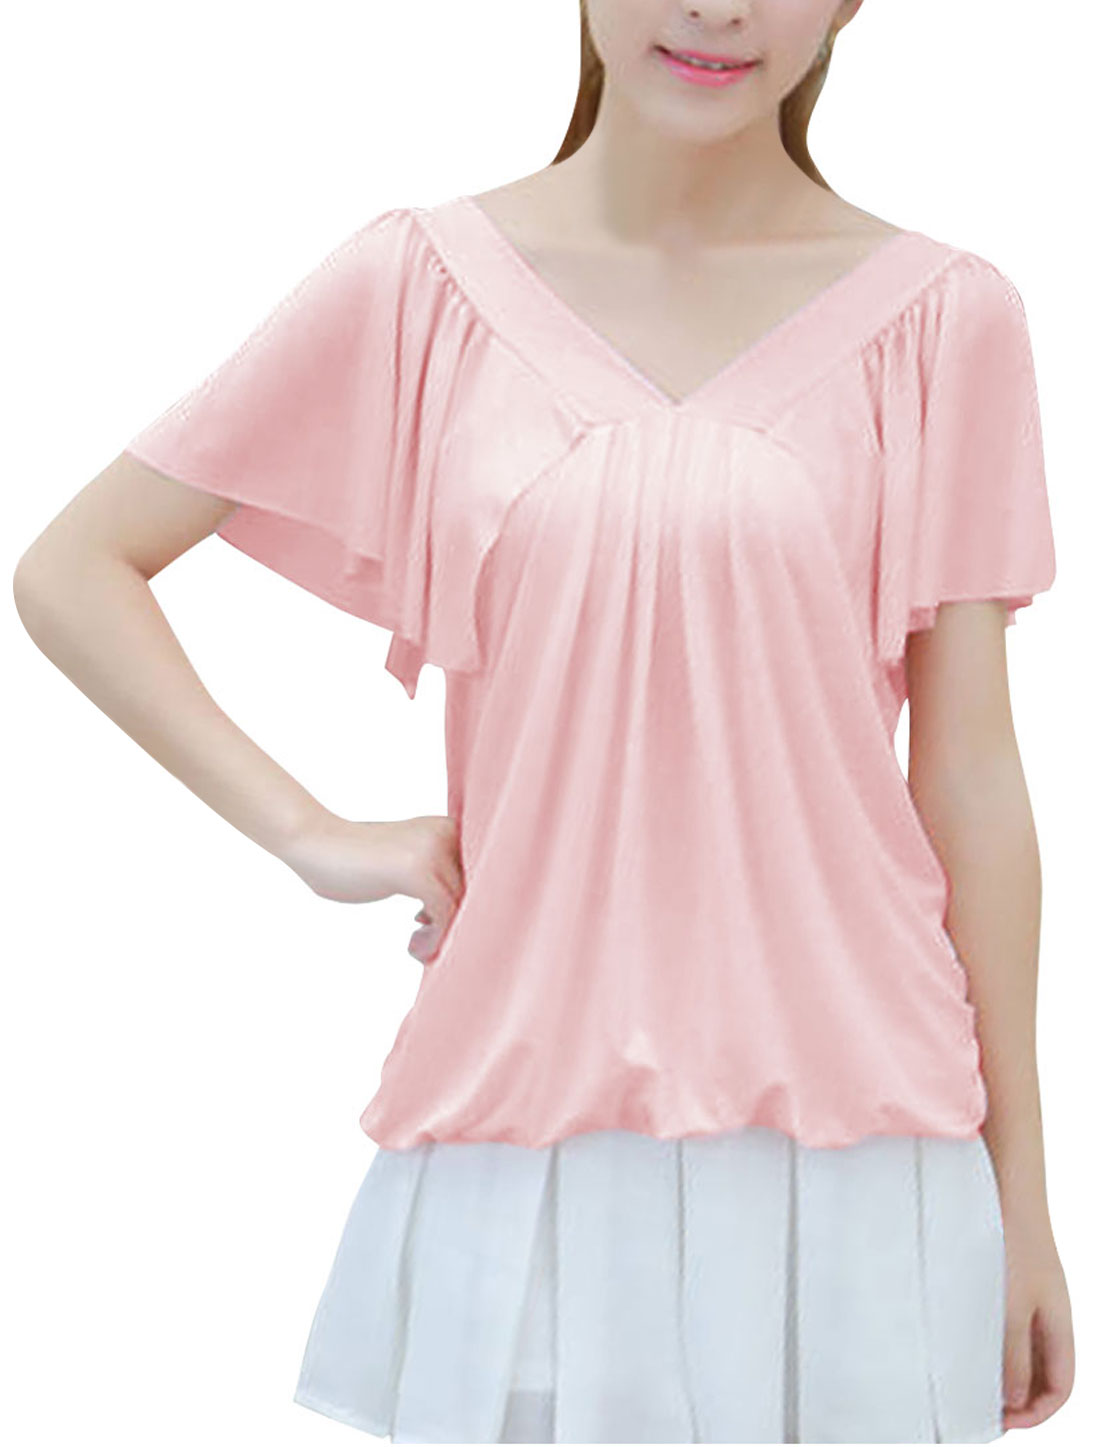 New Style Pure Light Pink V Neck Short Flouncing Sleeve Shirt for Lady XS